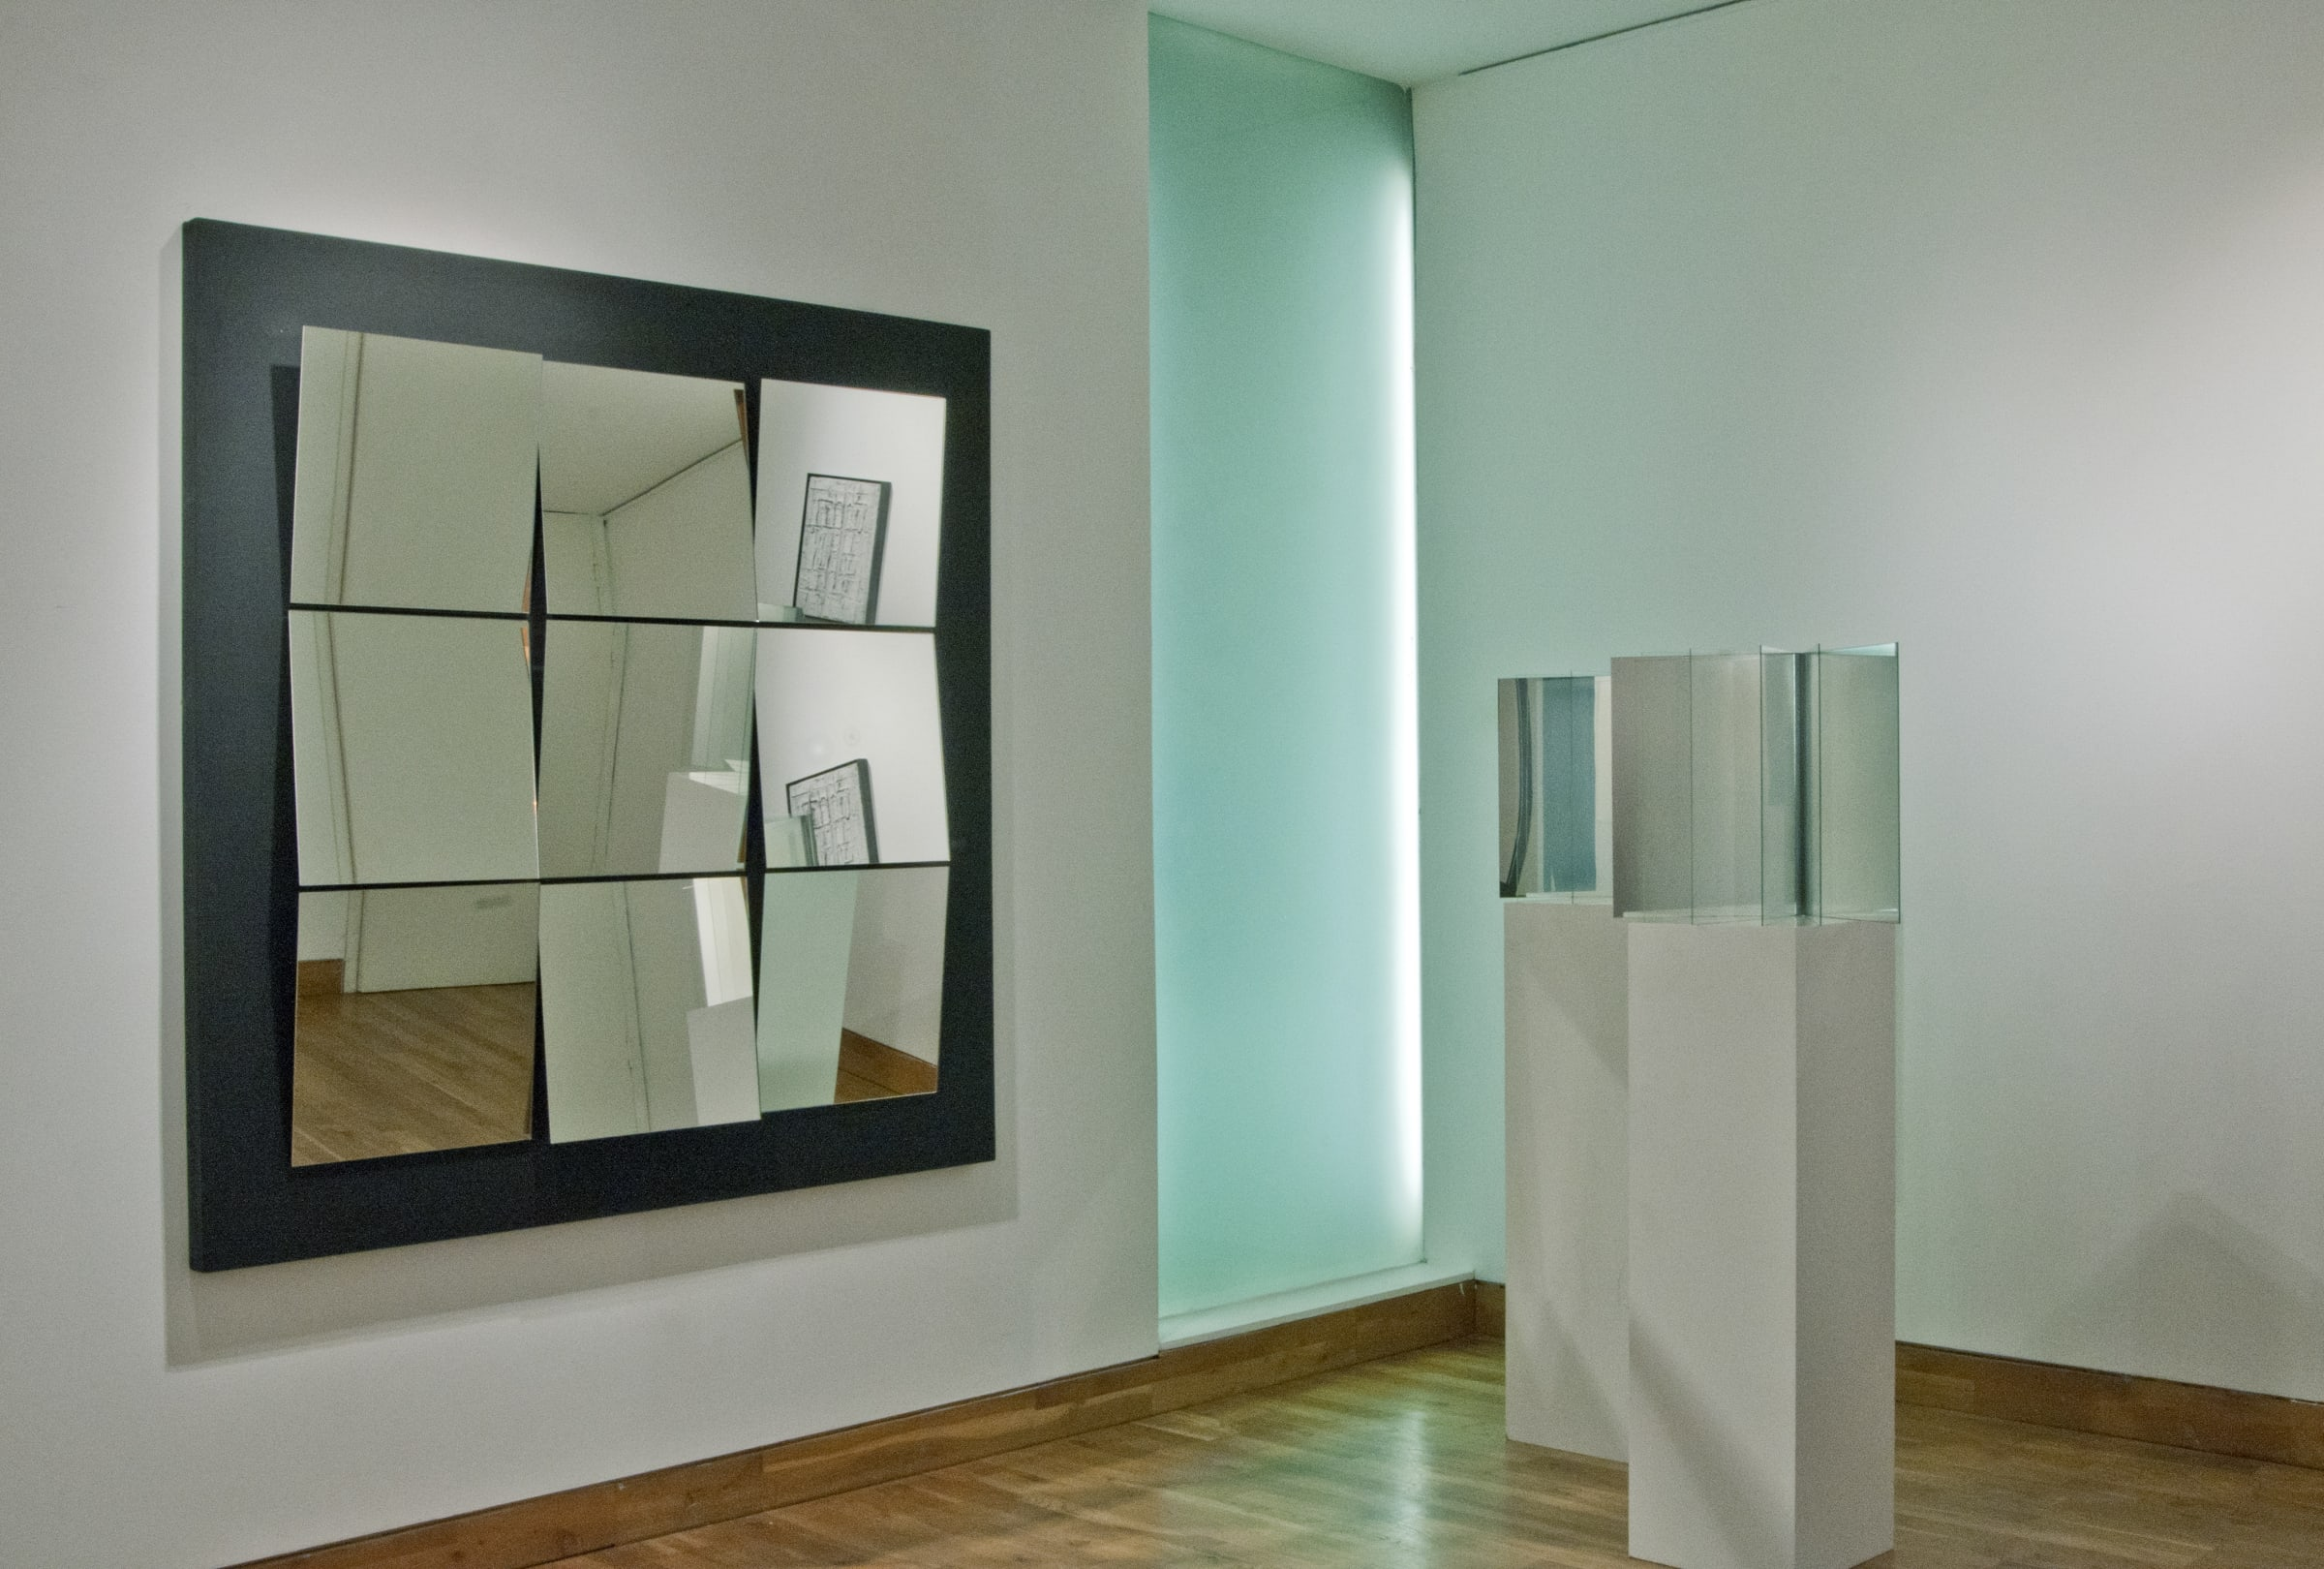 """<span class=""""link fancybox-details-link""""><a href=""""/exhibitions/75/works/image_standalone228/"""">View Detail Page</a></span><p>CHRISTIAN MEGERT   A NEW SPACE   11 JAN - 24 FEB 2012  Installation View</p>"""